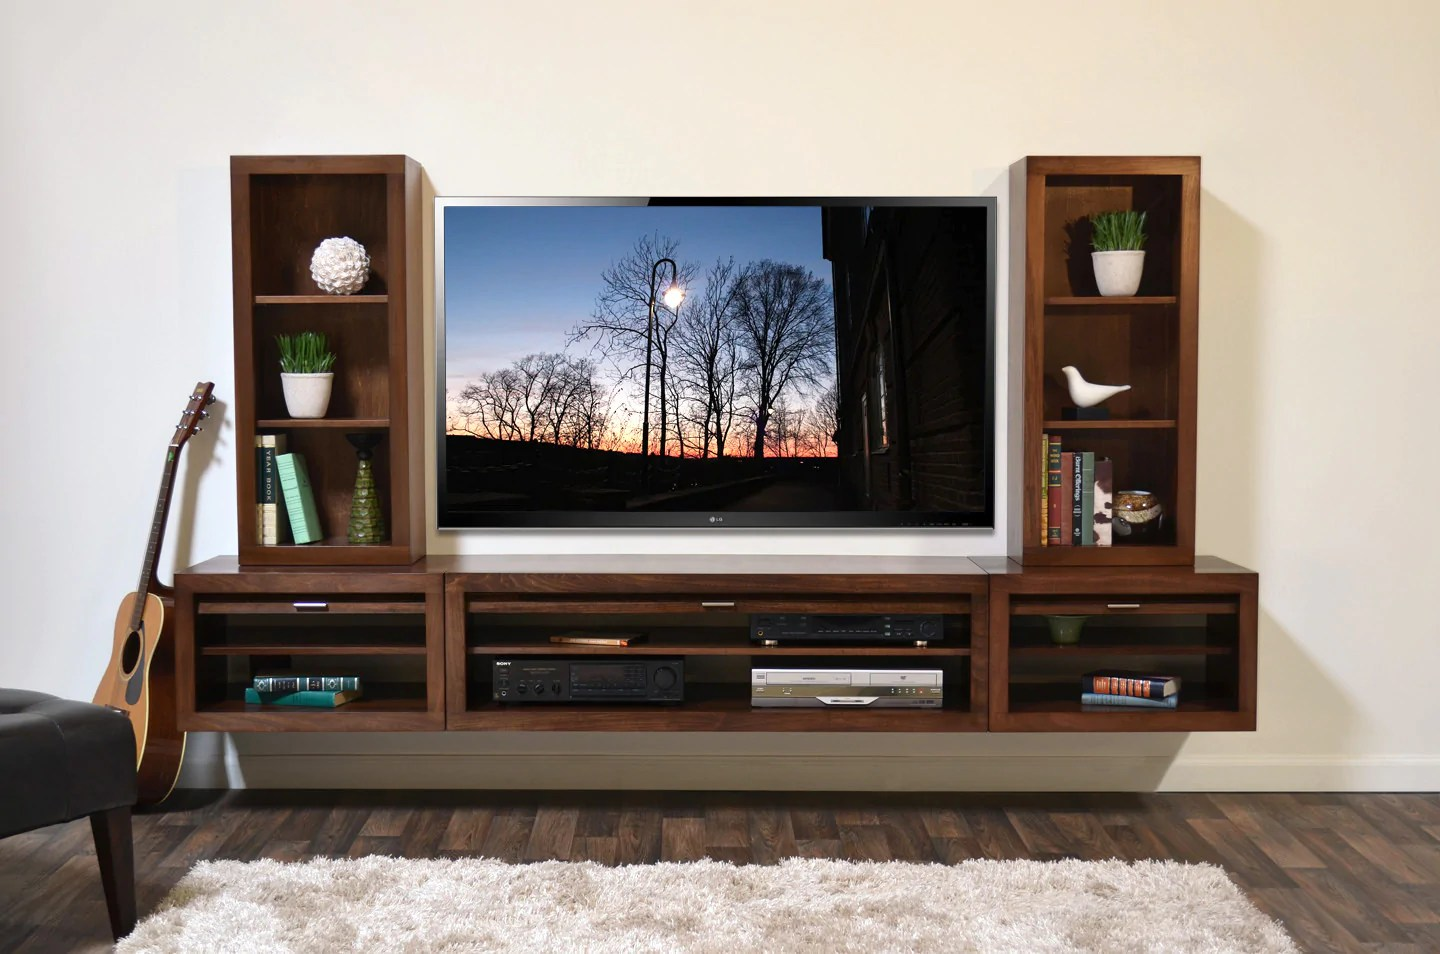 Superb Floating Tv Stand Hanging Wall Mount Entertainment Center Console Eco Geo Mocha Woodwaves 2048x Entertainment Center Design Ideas Entertainment Center Plans houzz 01 Modern Entertainment Center